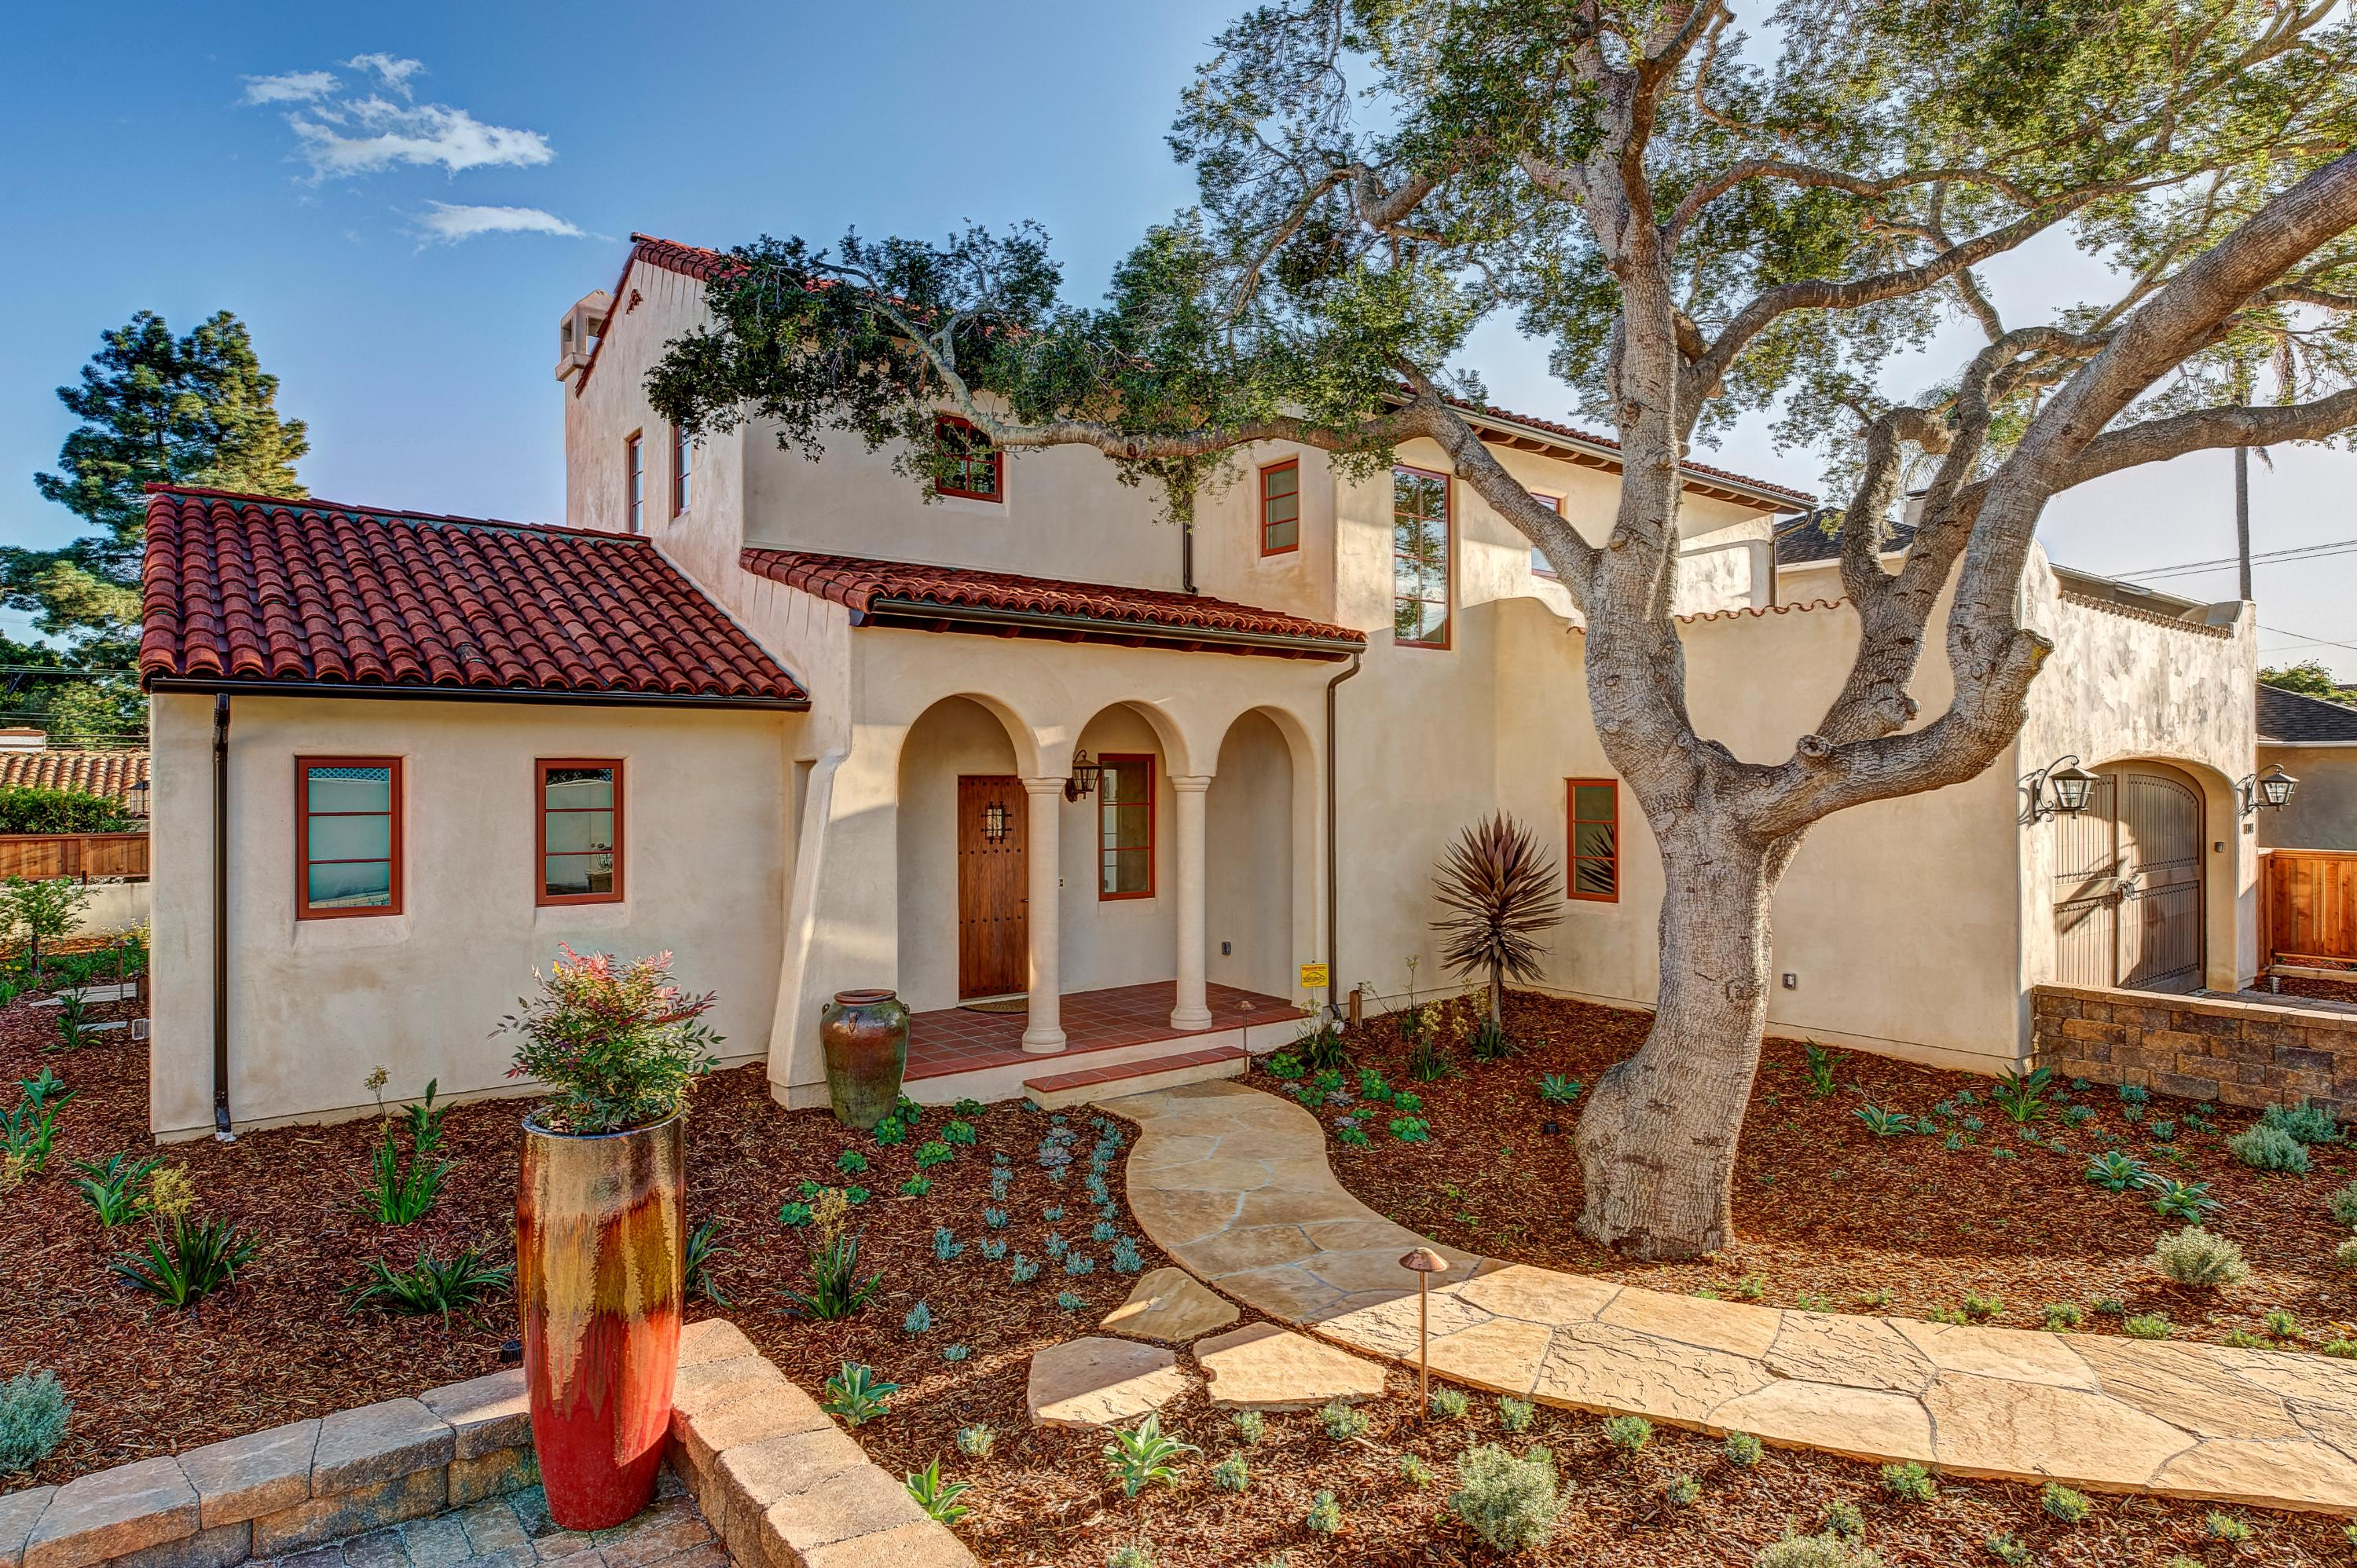 Property photo for 1714 Anacapa St Santa Barbara, California 93101 - 15-2122